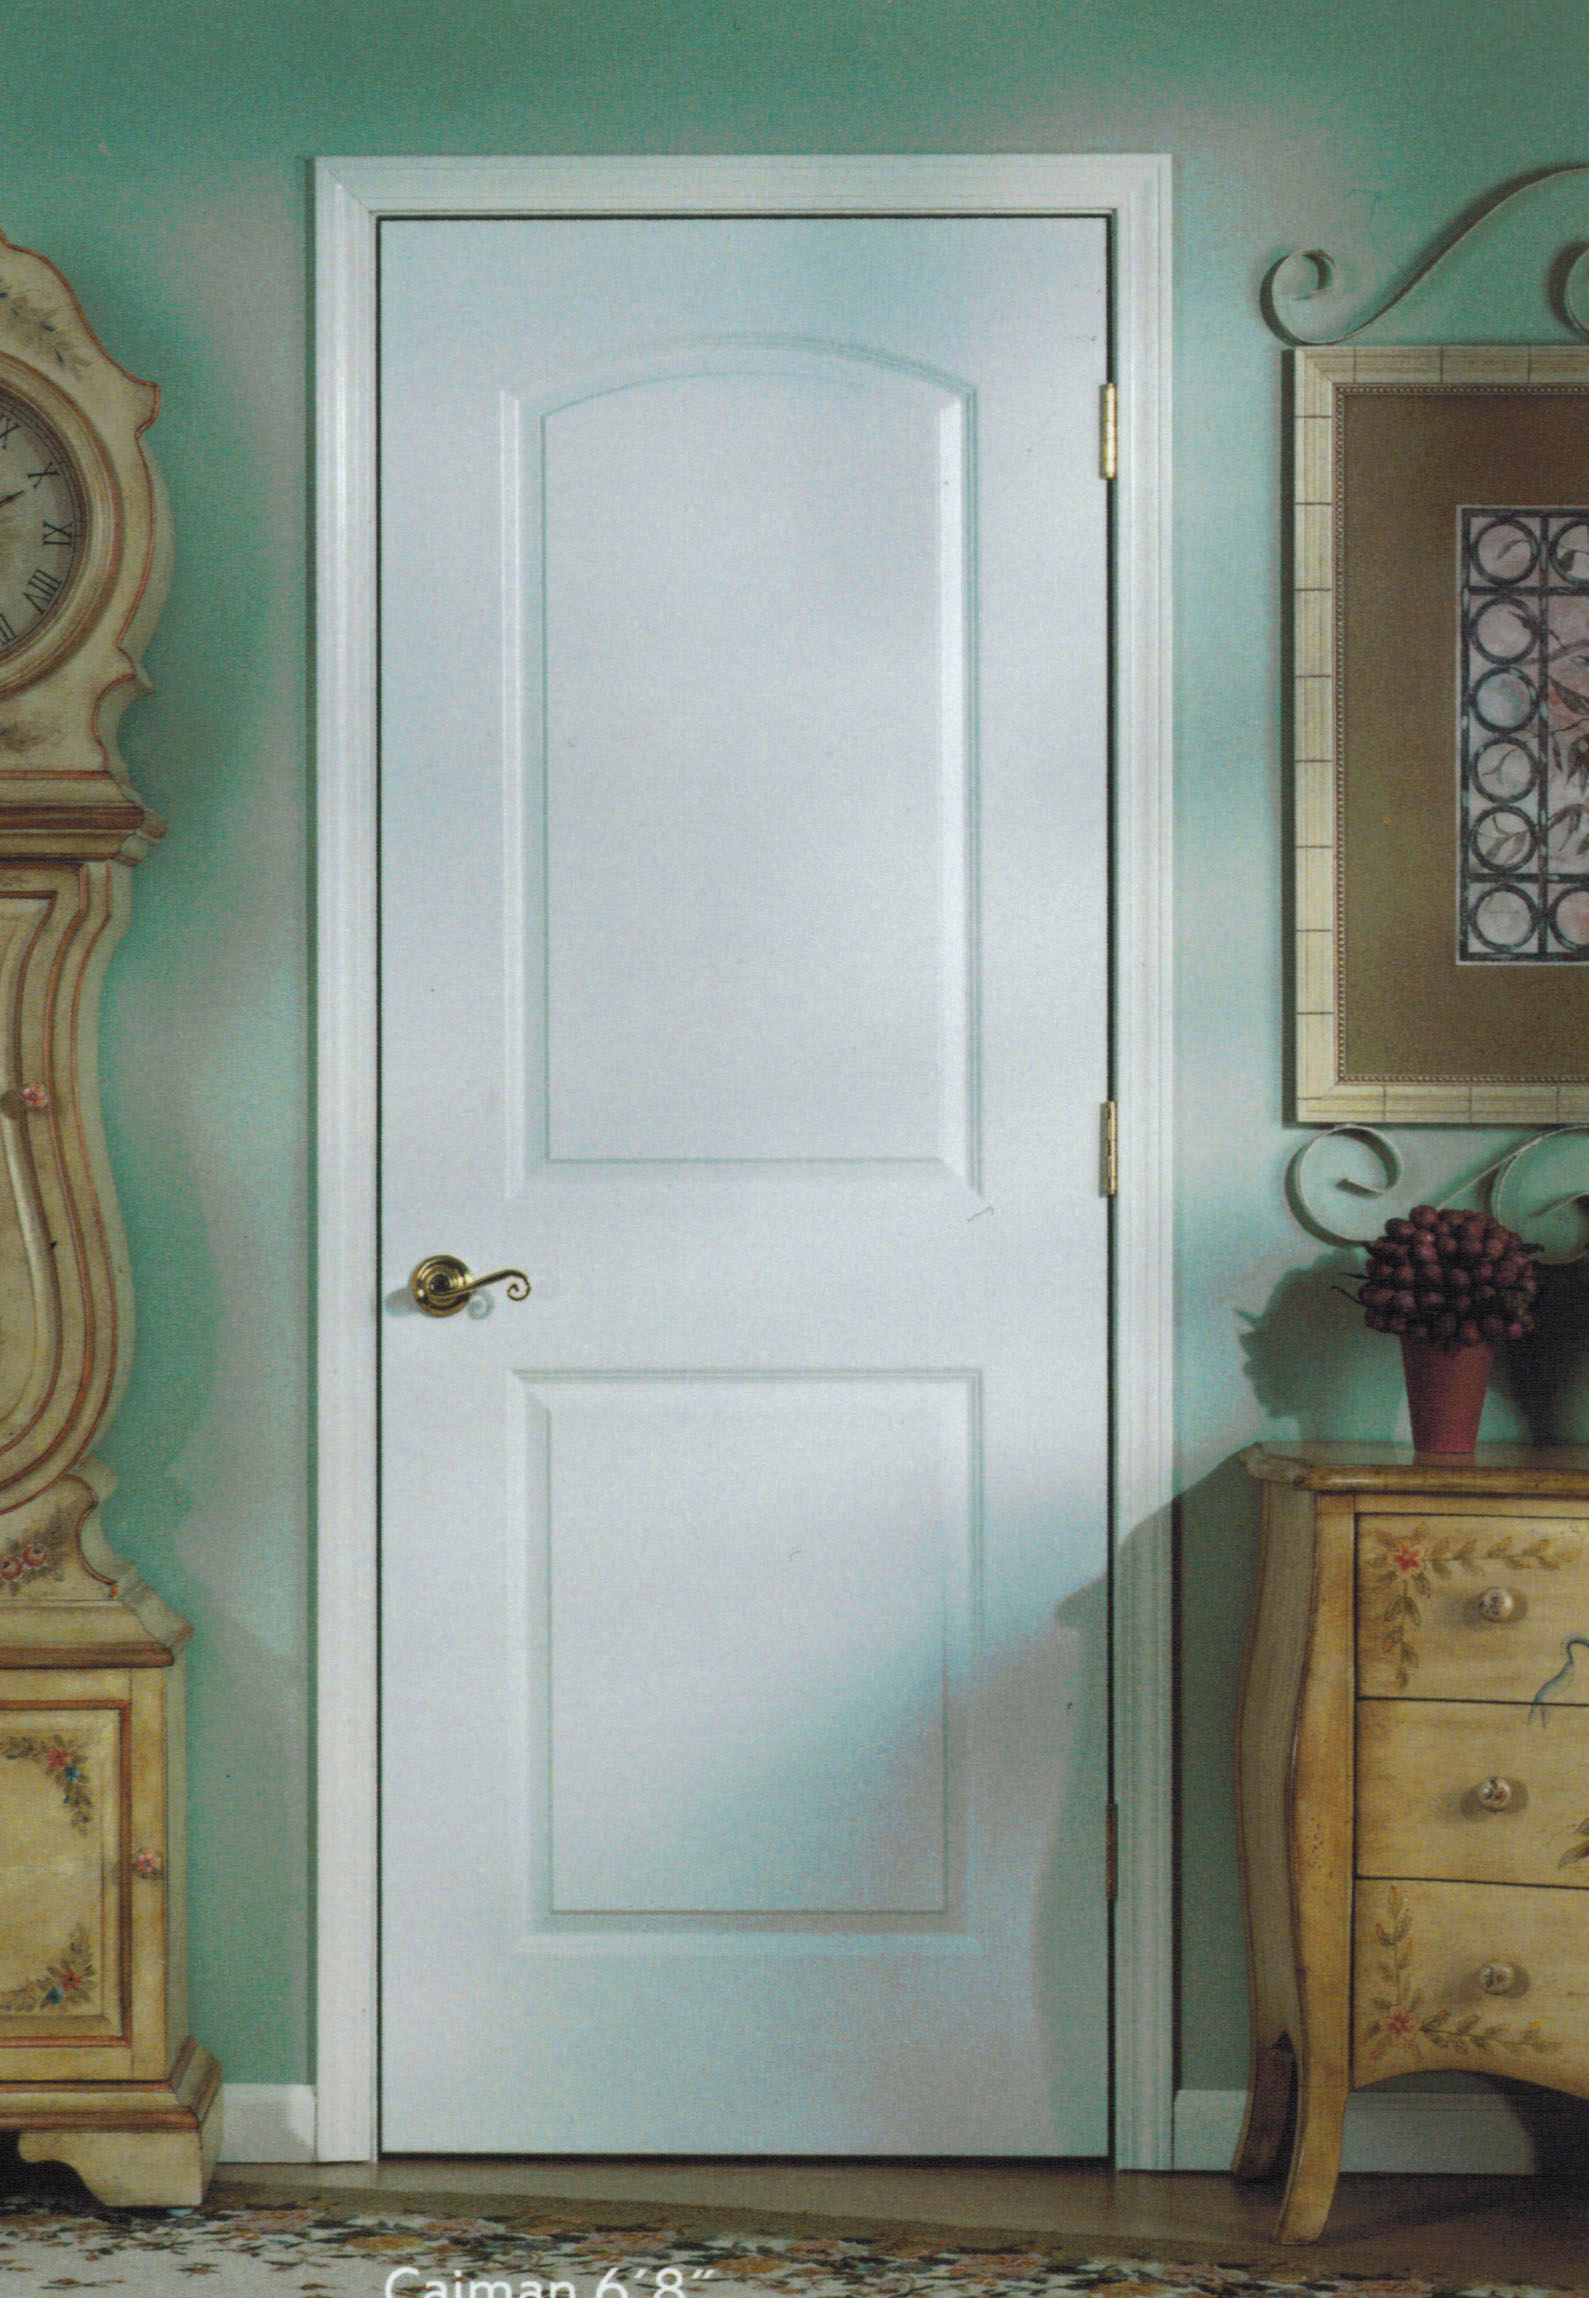 2298 #5F4D36  * 2 Panel Arch Hollow Core Caiman 6′ 8″ (80″) On 4 5/8  wallpaper 6 Panel Interior Doors Hollow Core 15351589